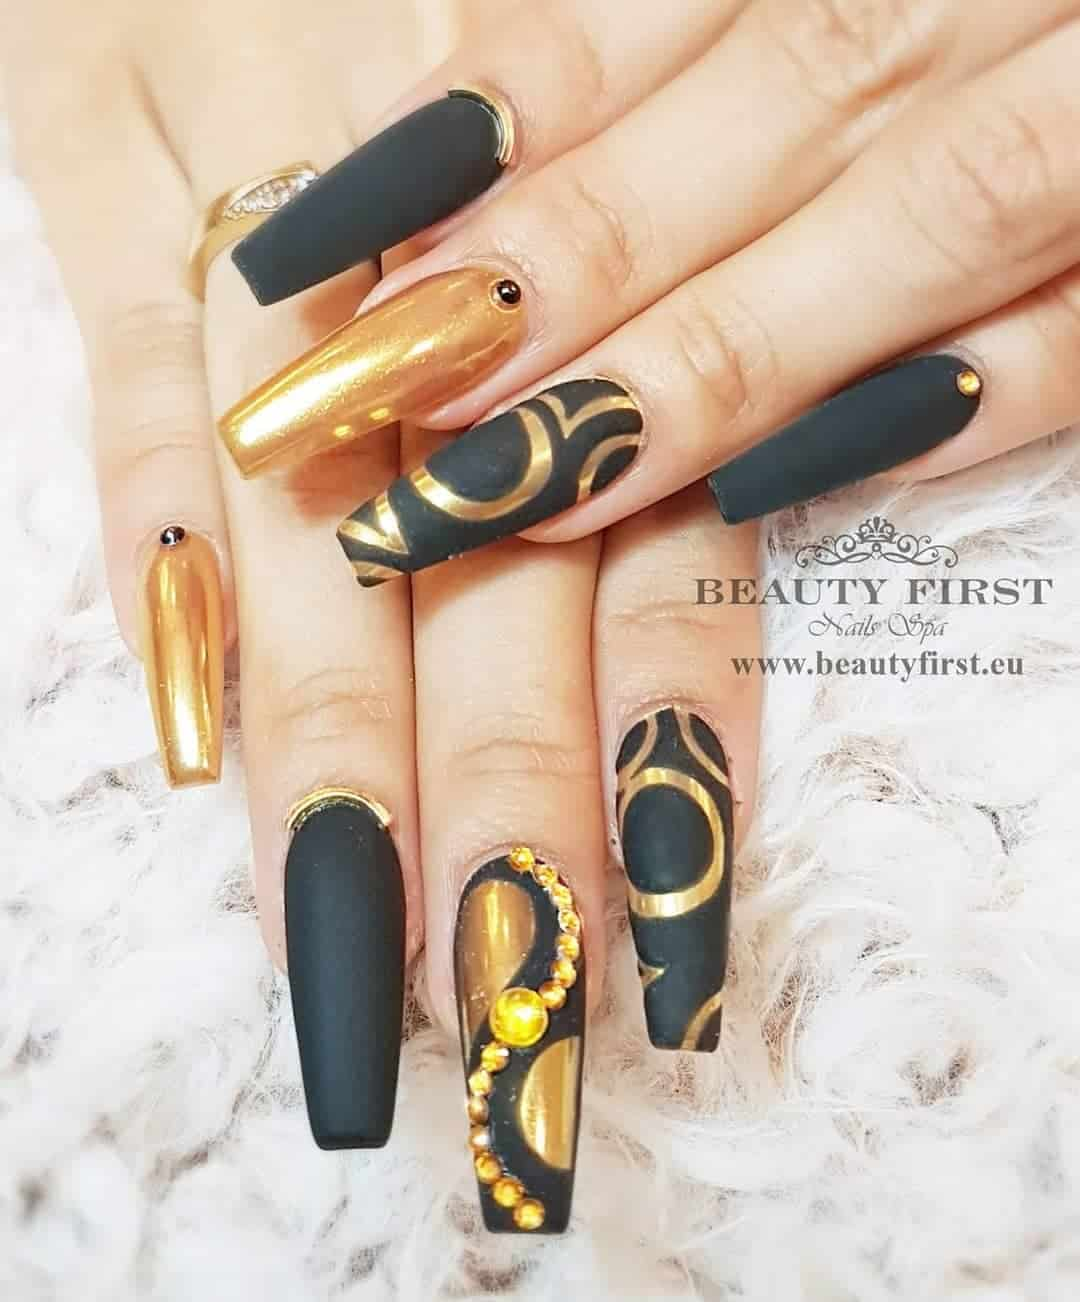 Long Nail Designs To Inspire You - Black and Gold Effect